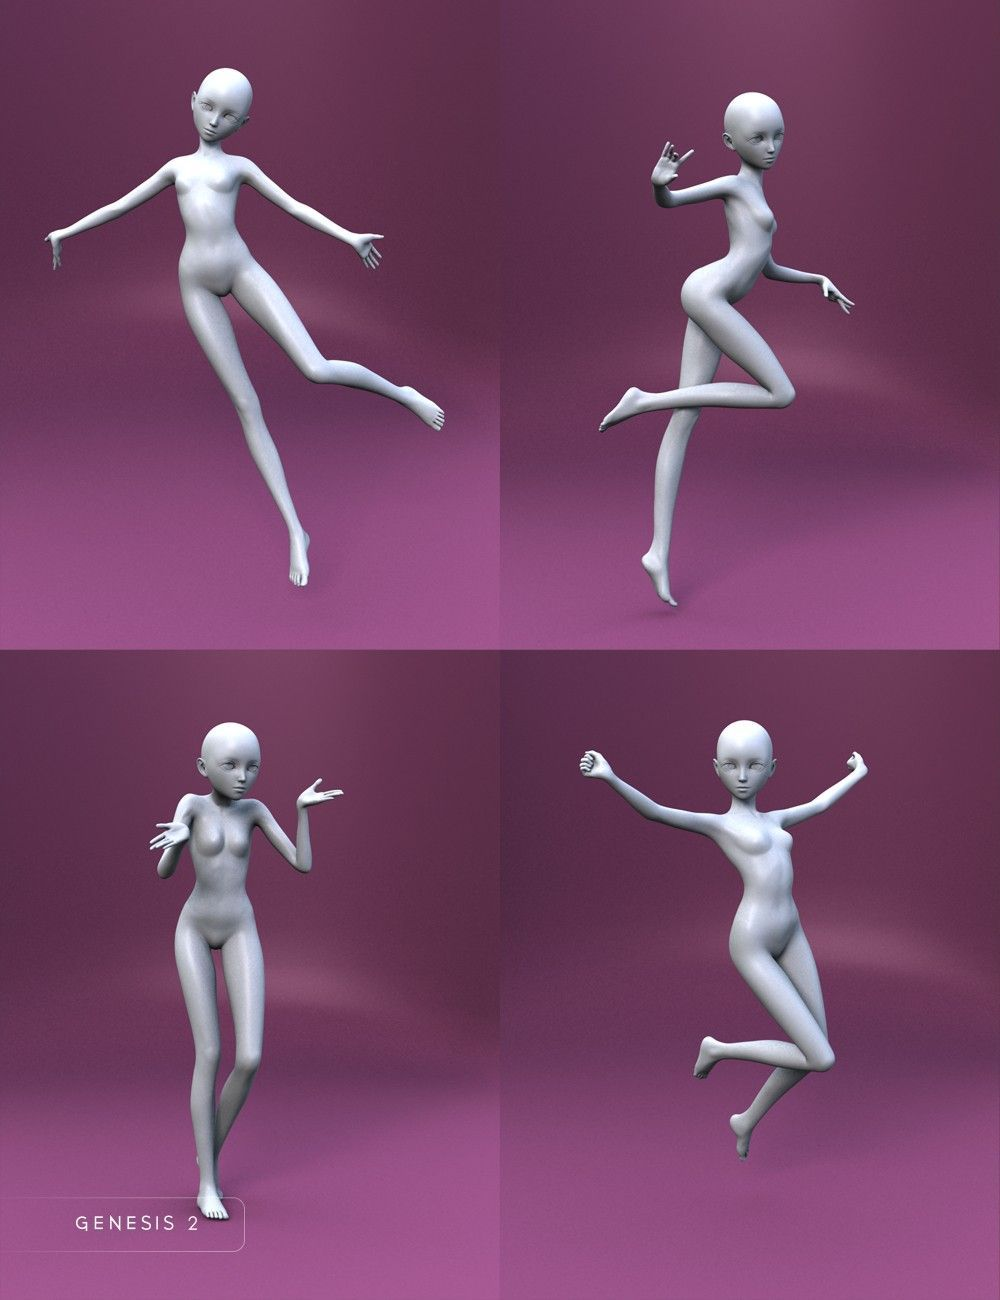 Bell Anime Poses For Keiko 6 And Aiko 6 3d Models And 3d Software By Daz 3d Bell Anime Poses For Keiko 6 And Aik In 2020 Anime Poses Art Reference Poses Art Poses